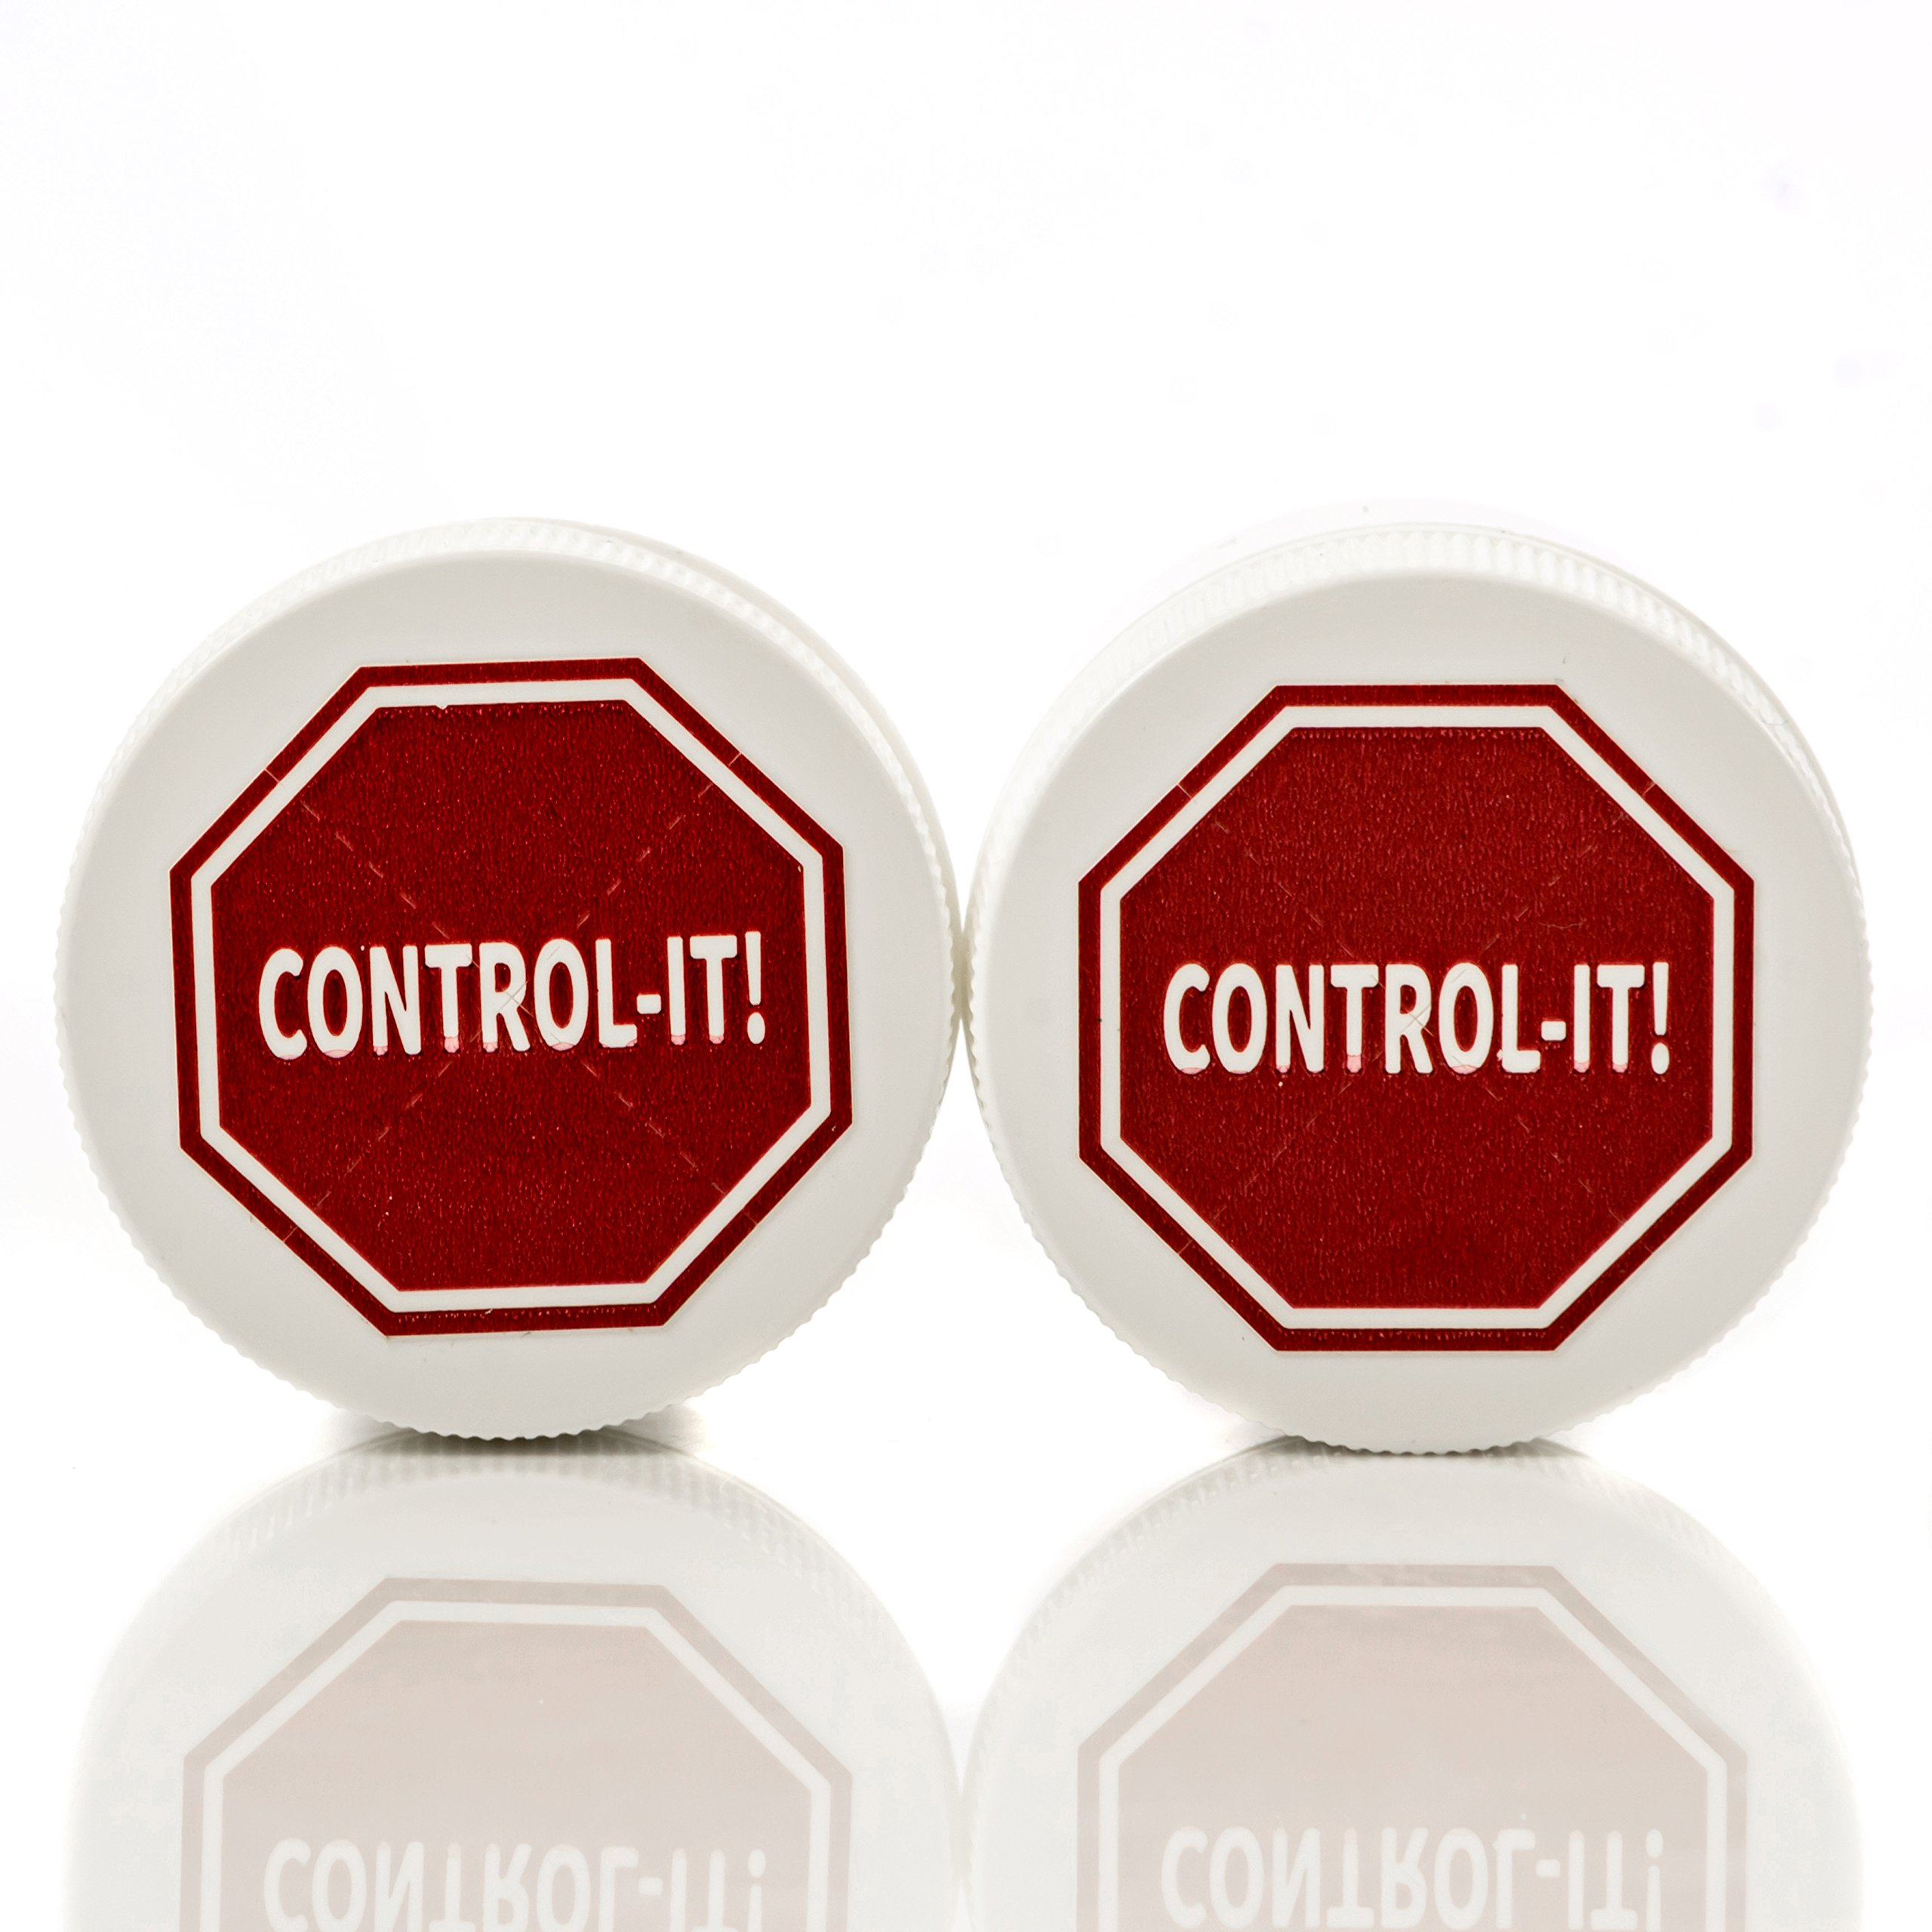 Control-It Stop Thumb Sucking & Nail Biting Cream (2 Pack) All-Natural, Kid-Safe Deterrent | Gentle on Skin, Teeth and Fingers | Bitter Taste | Easy-to-Apply Formula